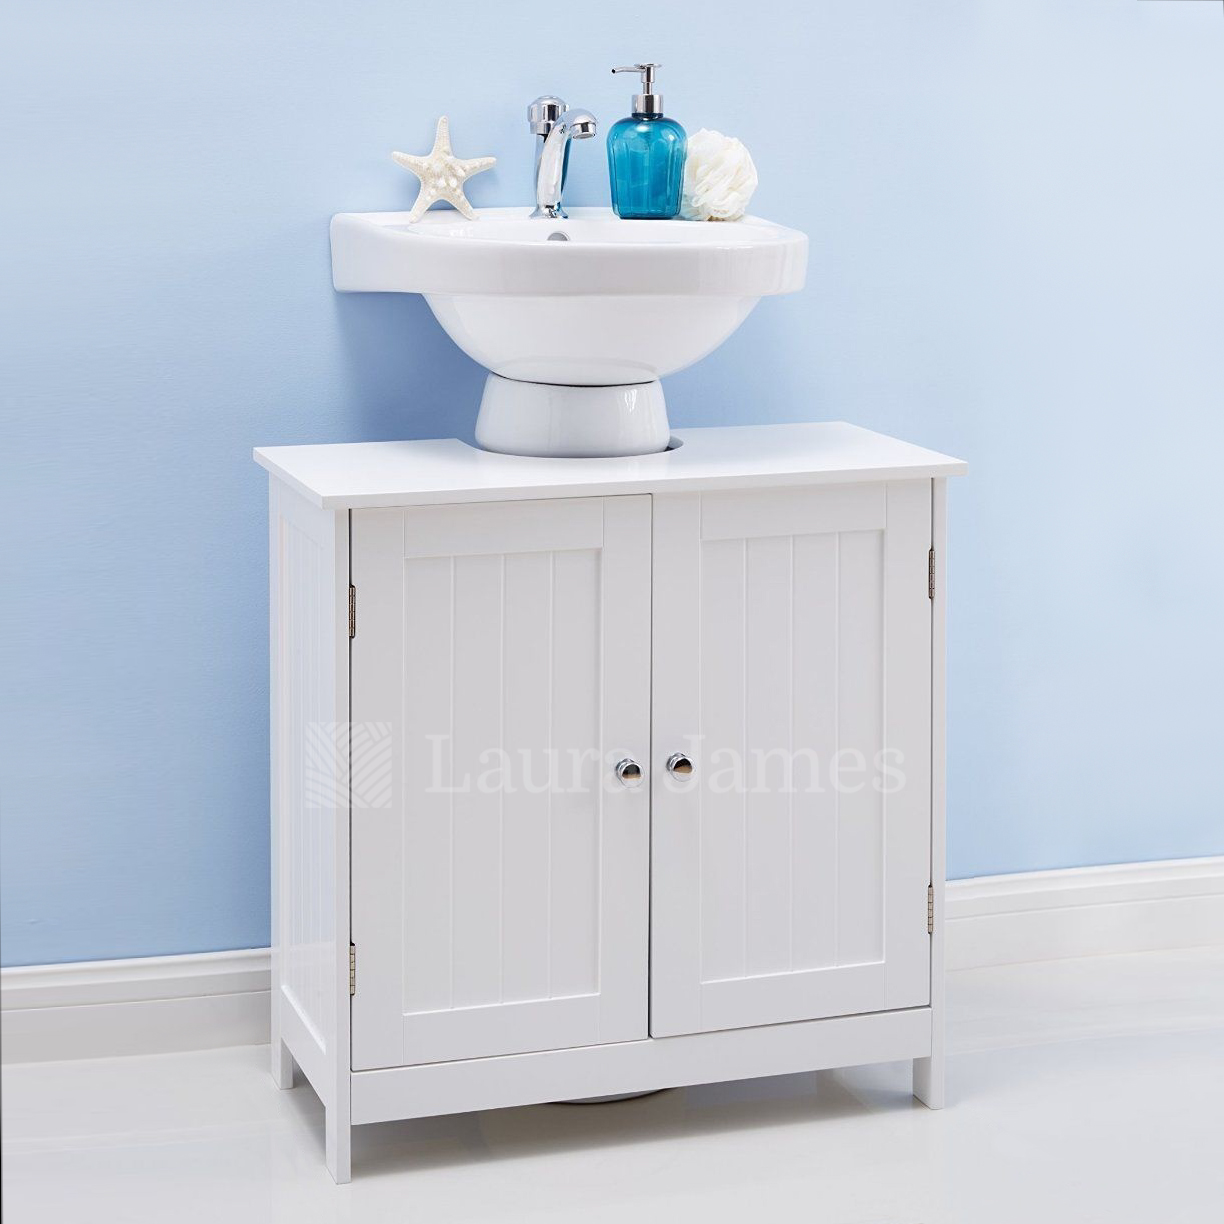 under sink bathroom cabinet storage unit cupboard white